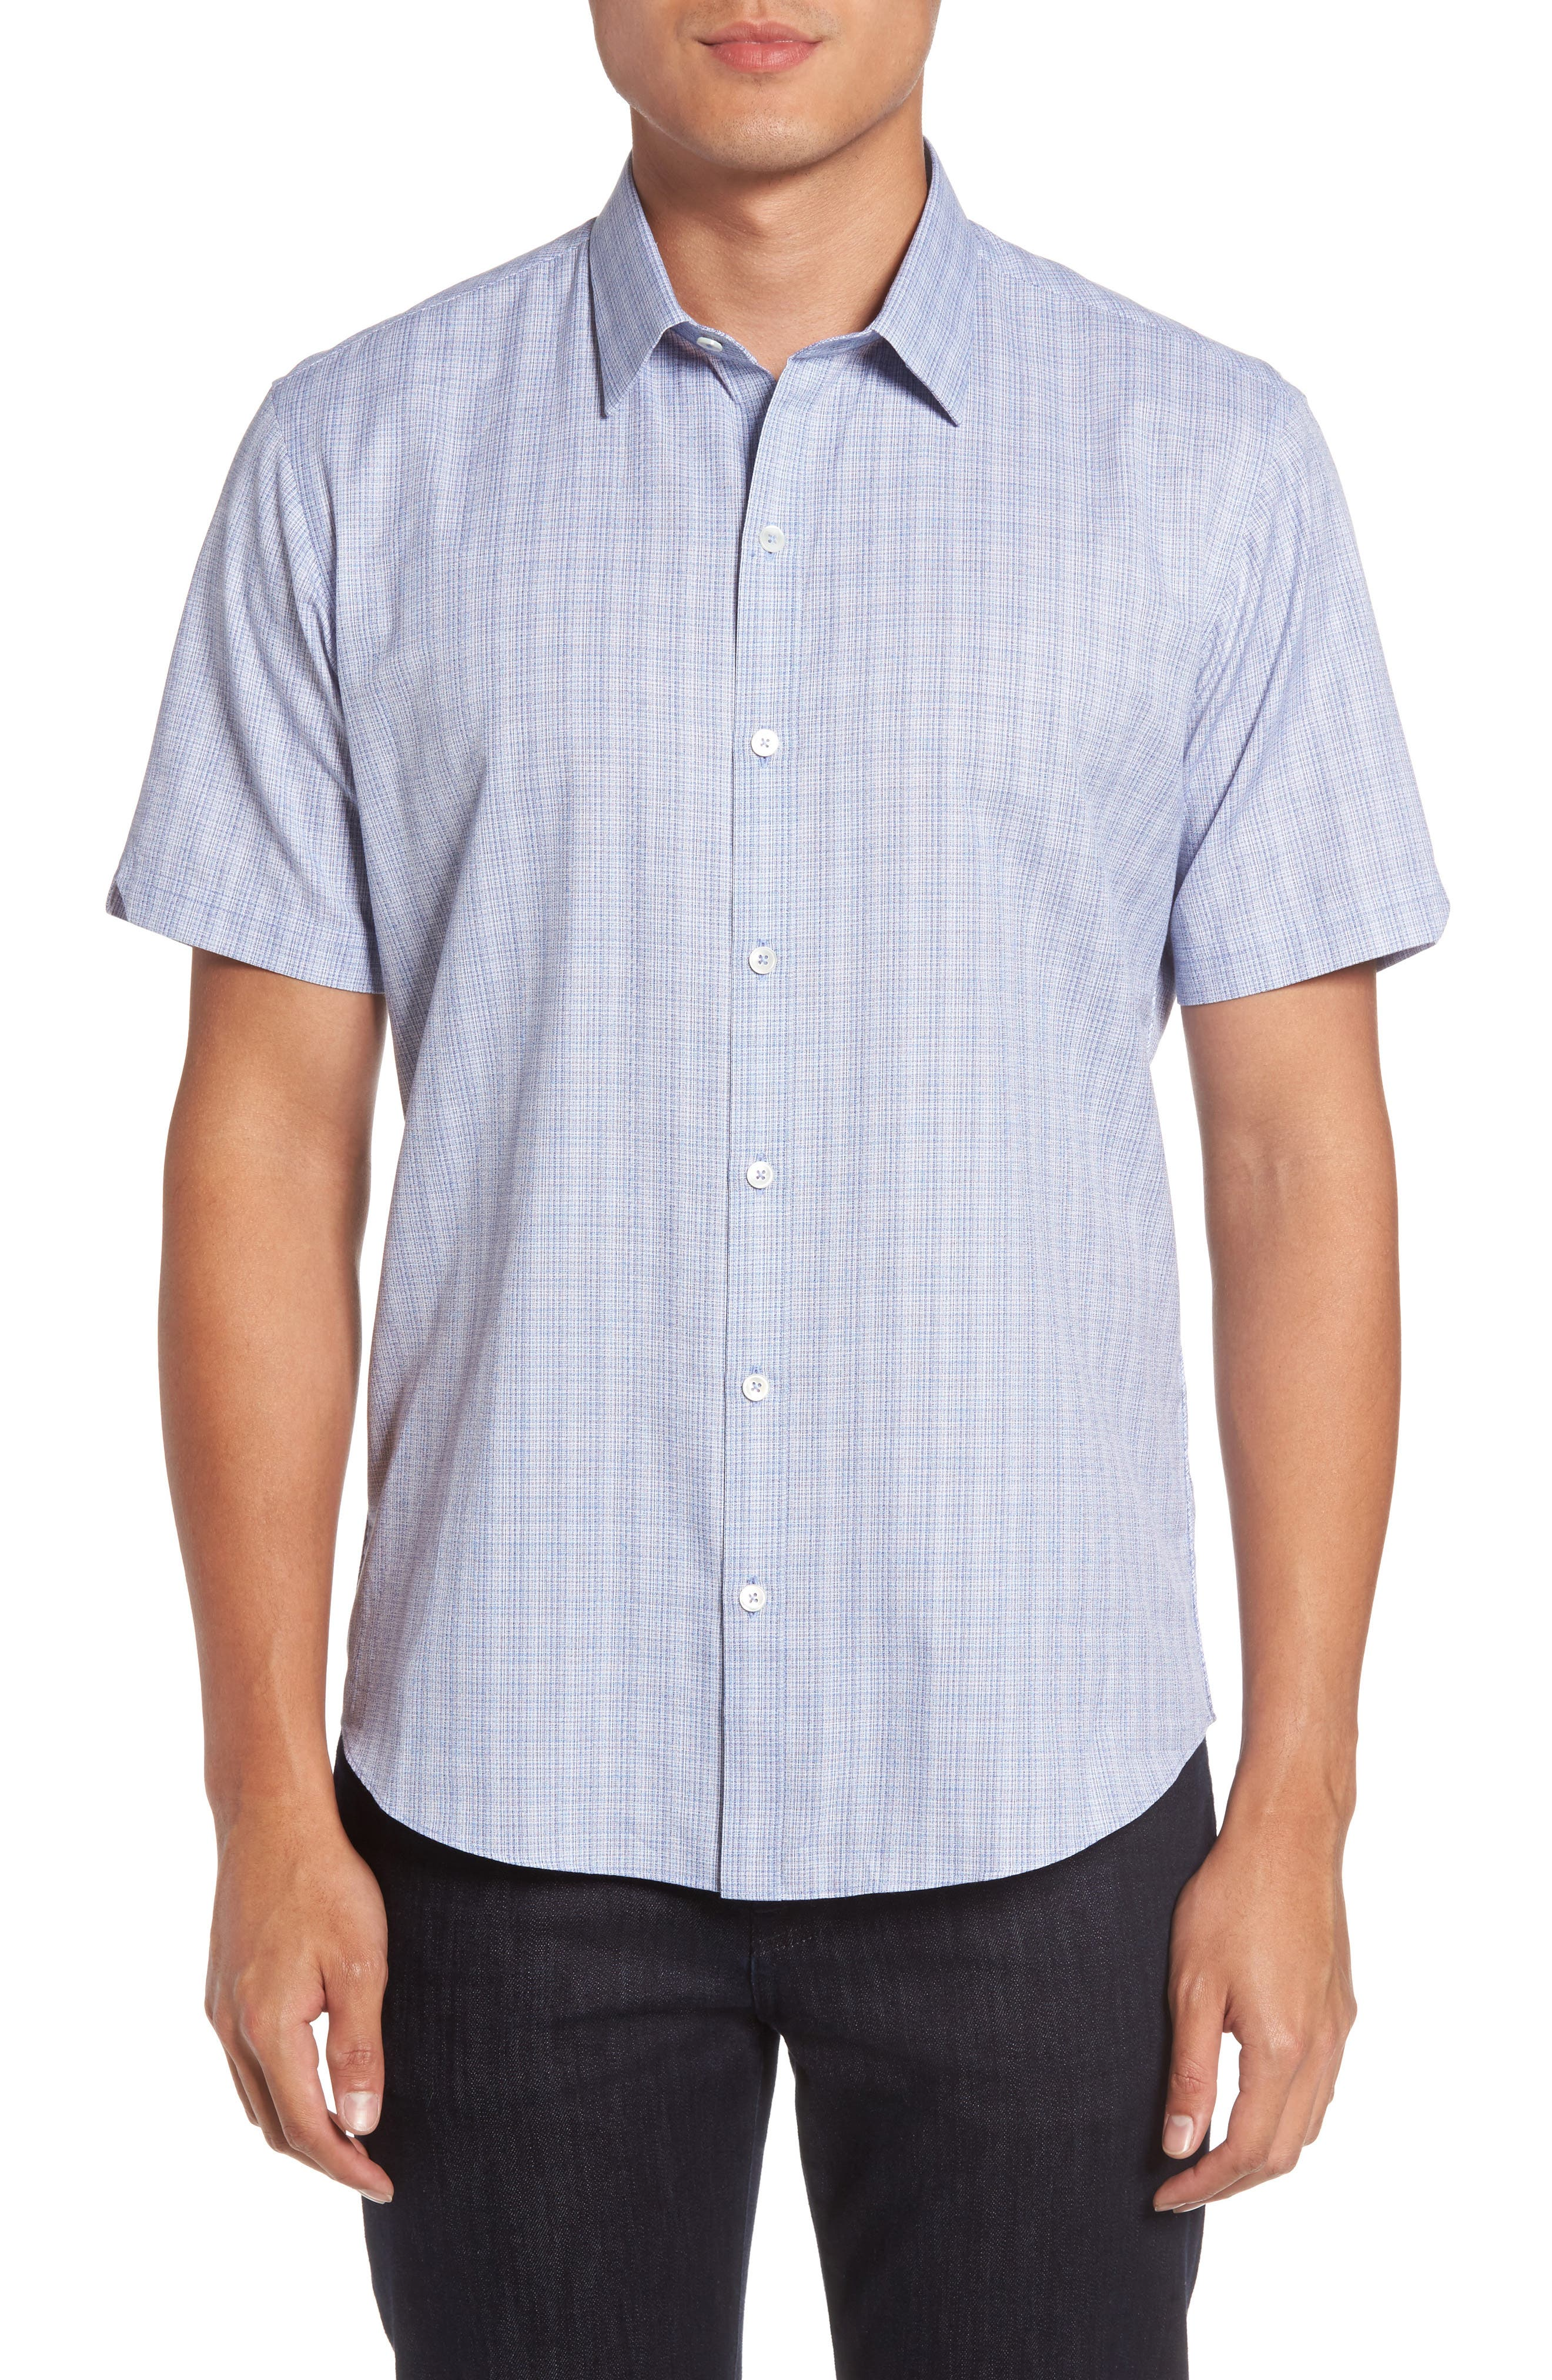 Zimmerman Check Sport Shirt,                         Main,                         color, Blue